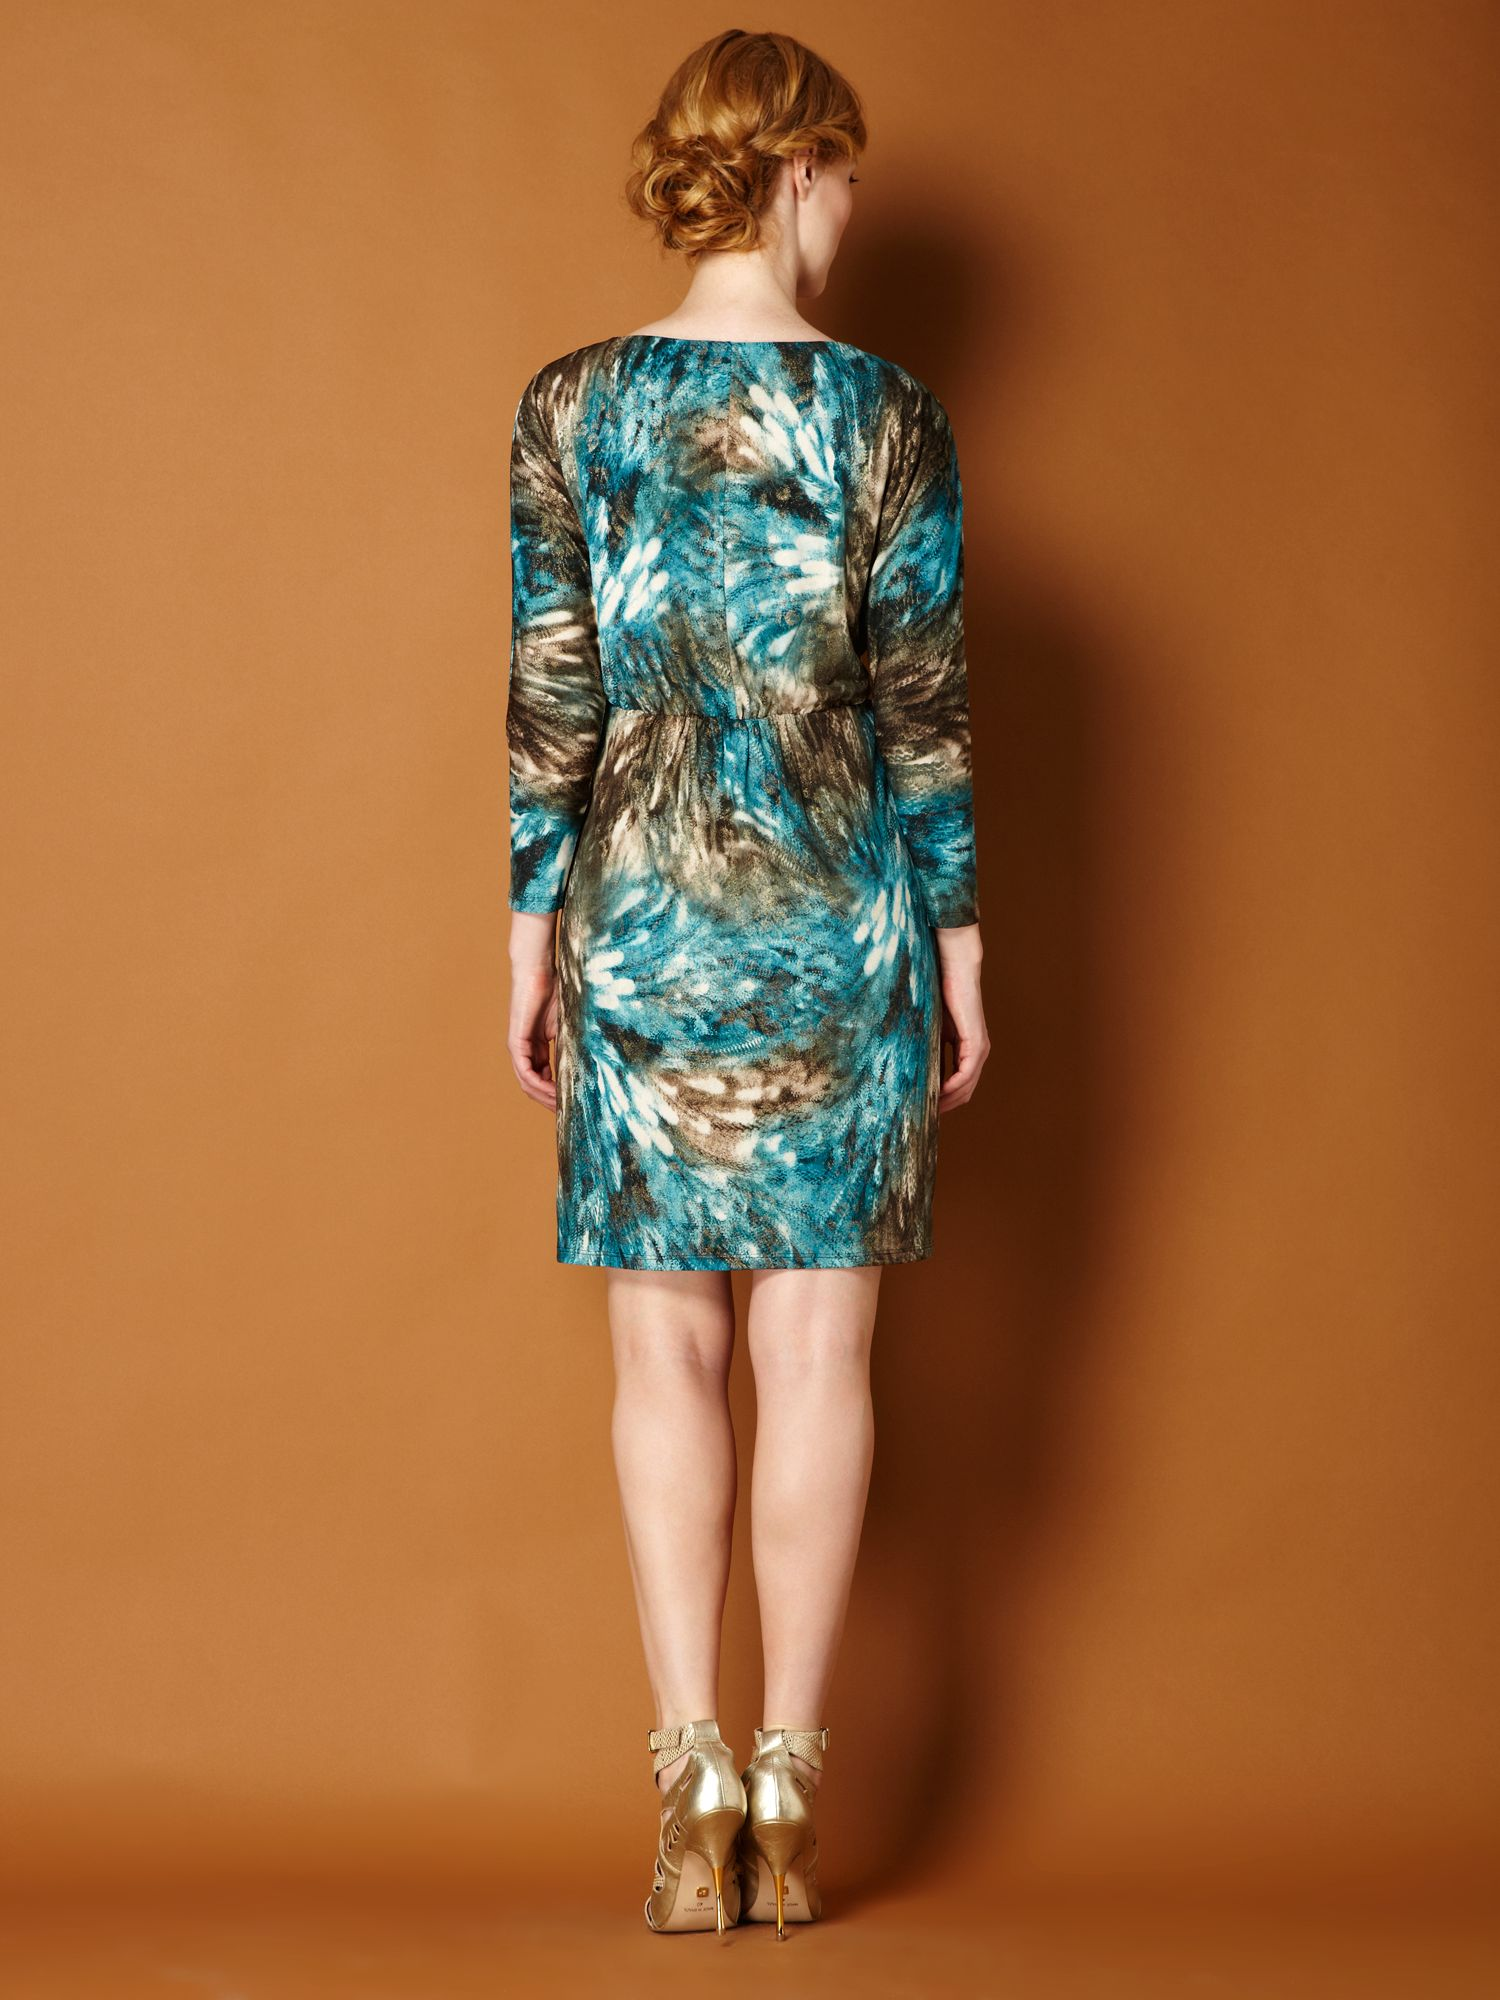 Metallic blurred animal jersey dress